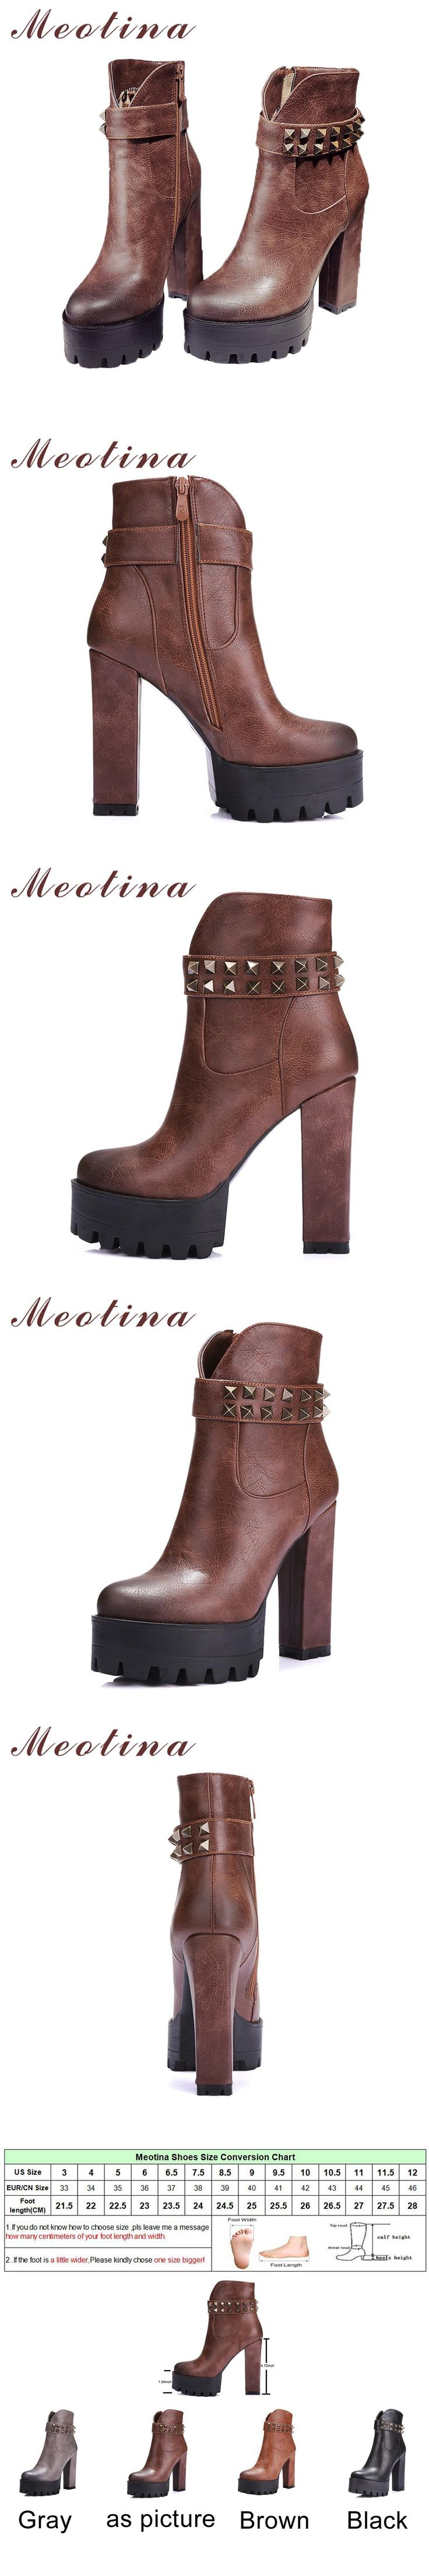 Meotina Women Motorcycle Boots Rivets Punk High Heel Ankle Boots Autumn Winter Platform High Boots Zip Ladies Shoe Gray Black 42